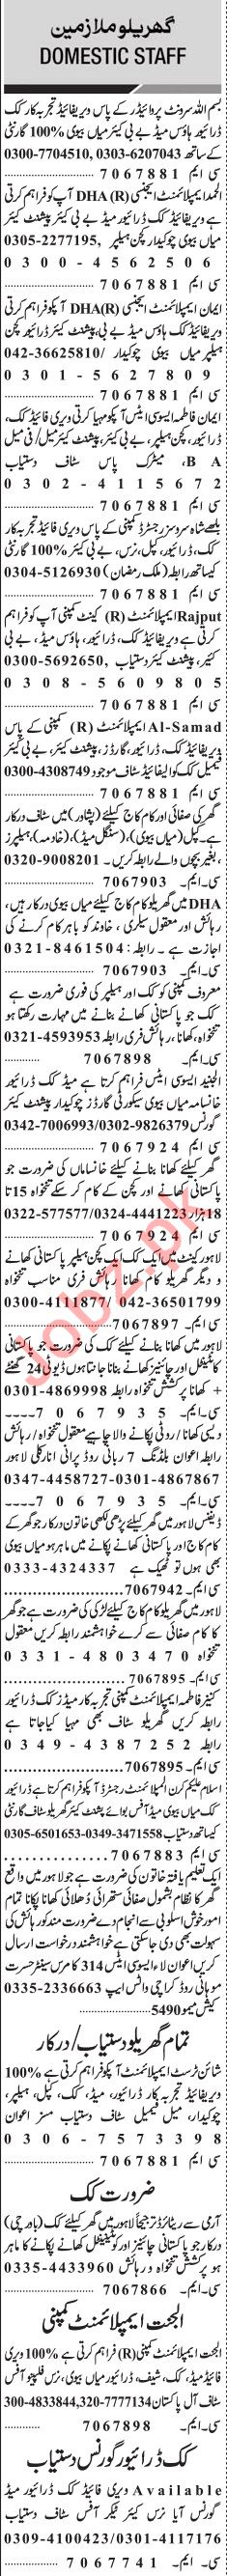 jang sunday classified ads 23rd june 2019 for domestic